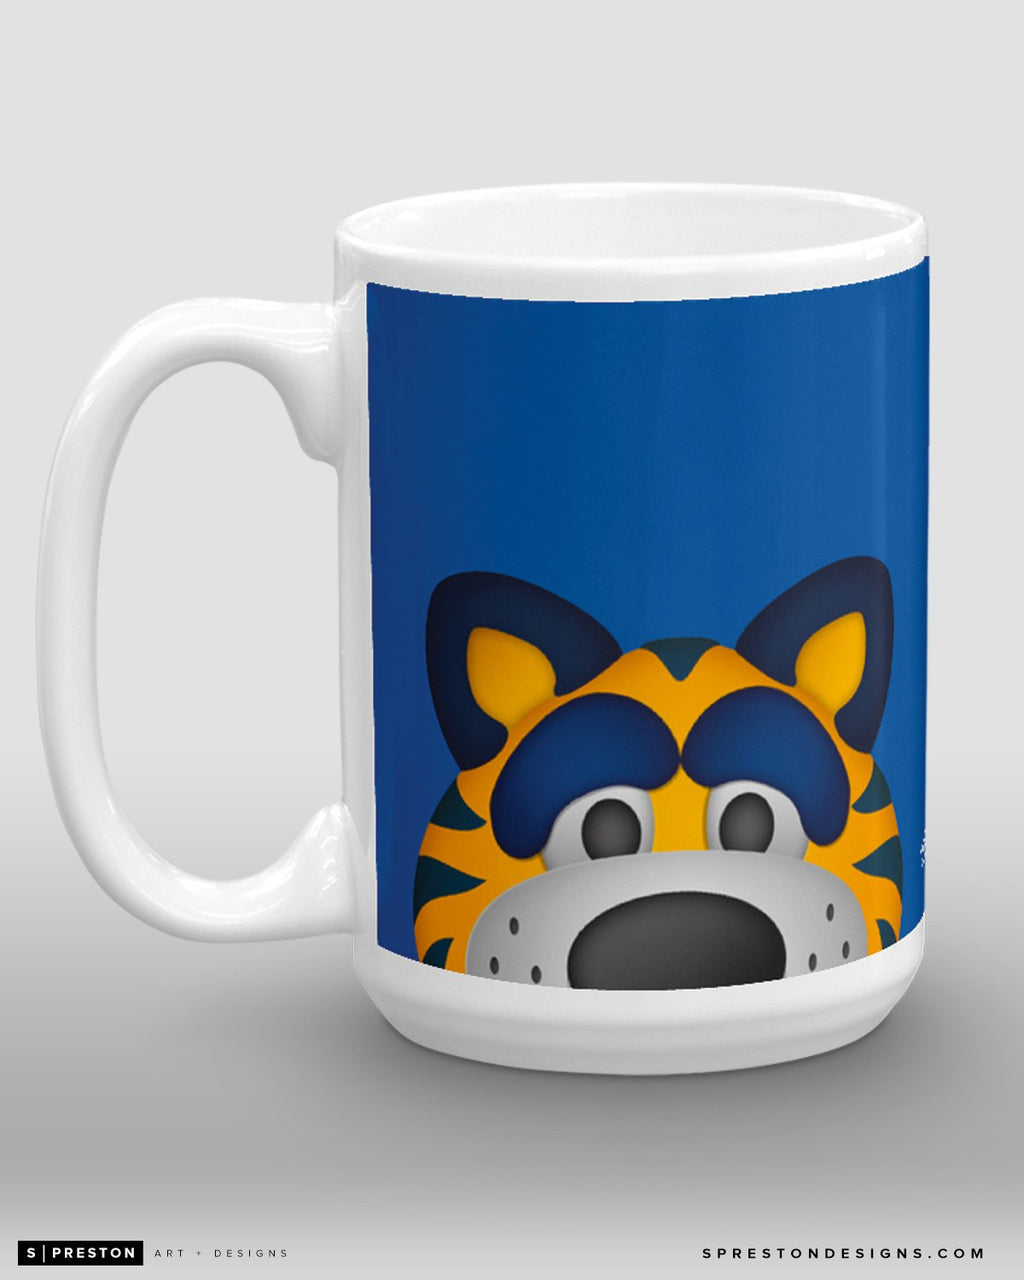 Minimalist Sabretooth Coffee Mug - NHL Licensed - Buffalo Sabres Mascot